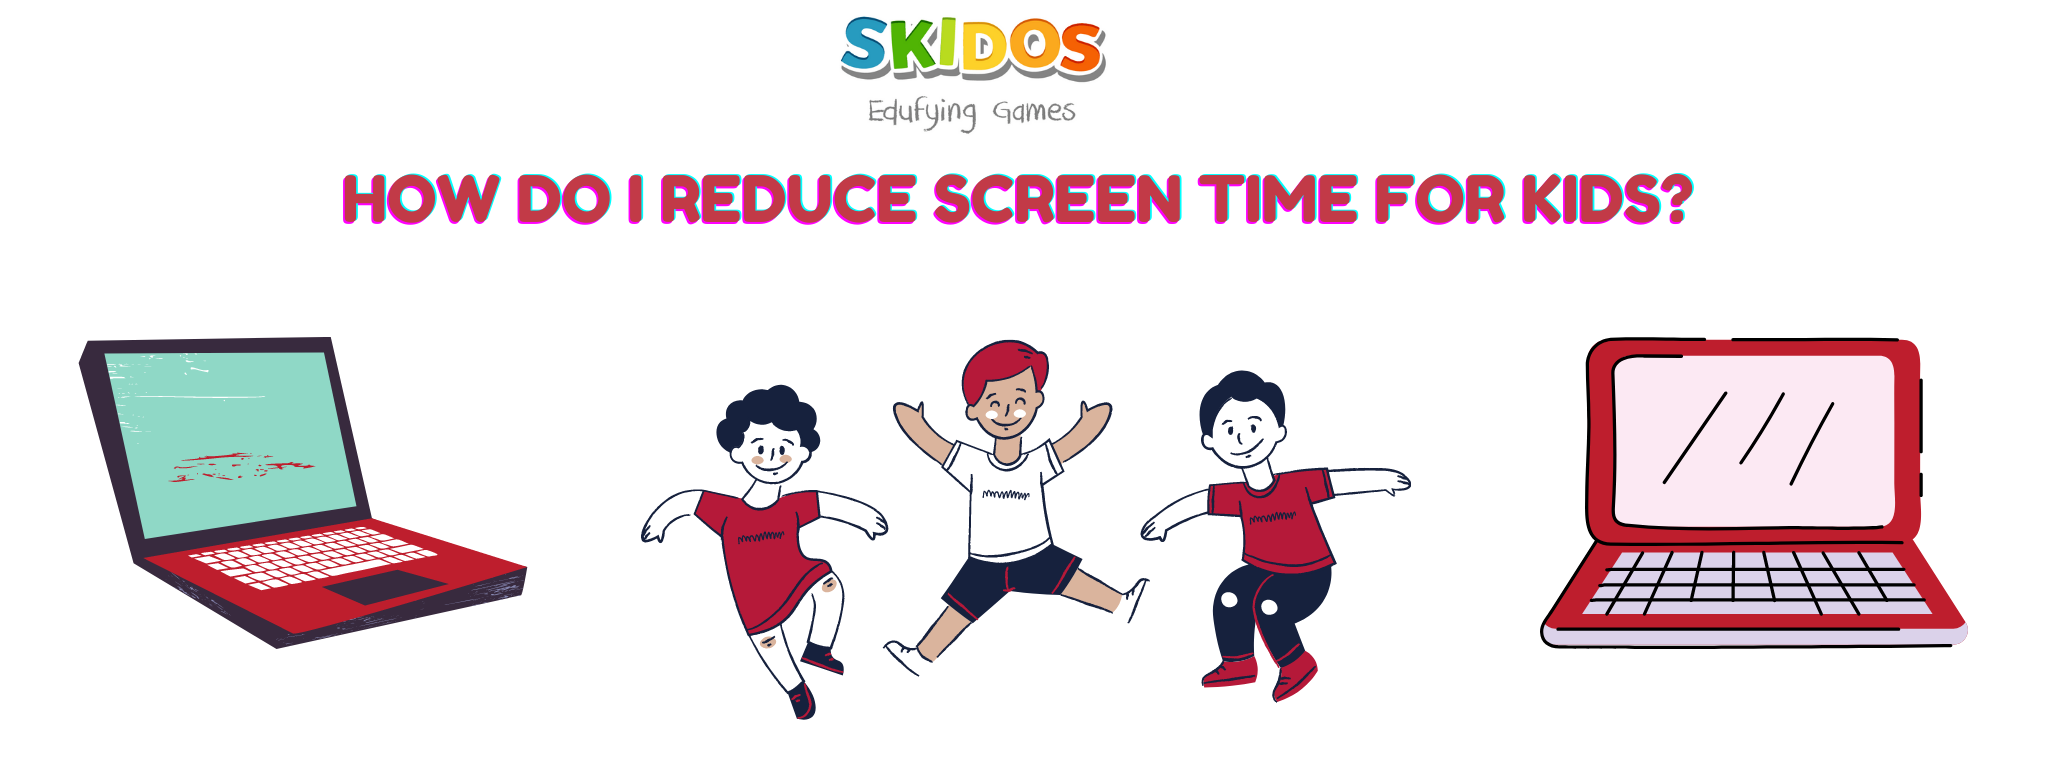 How do I reduce screen time for kids